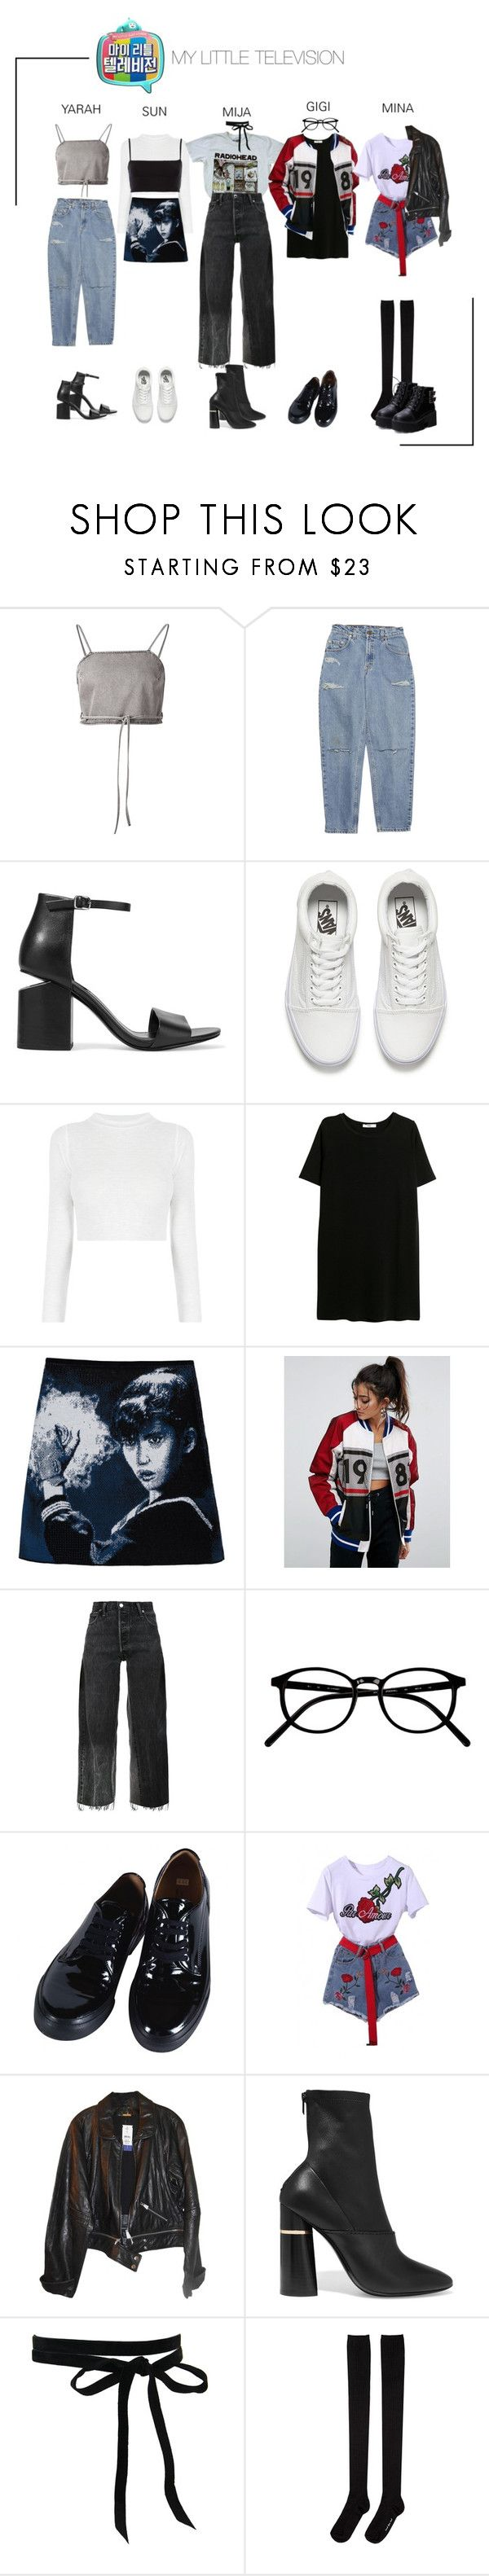 """""""ARIA (아리아) My Little Television"""" by ariaofficial ❤ liked on Polyvore featuring Shaina Mote, Alexander Wang, Vans, MANGO, ASOS, RE/DONE, Comme des Garçons, WithChic, Rebecca Minkoff and 3.1 Phillip Lim"""